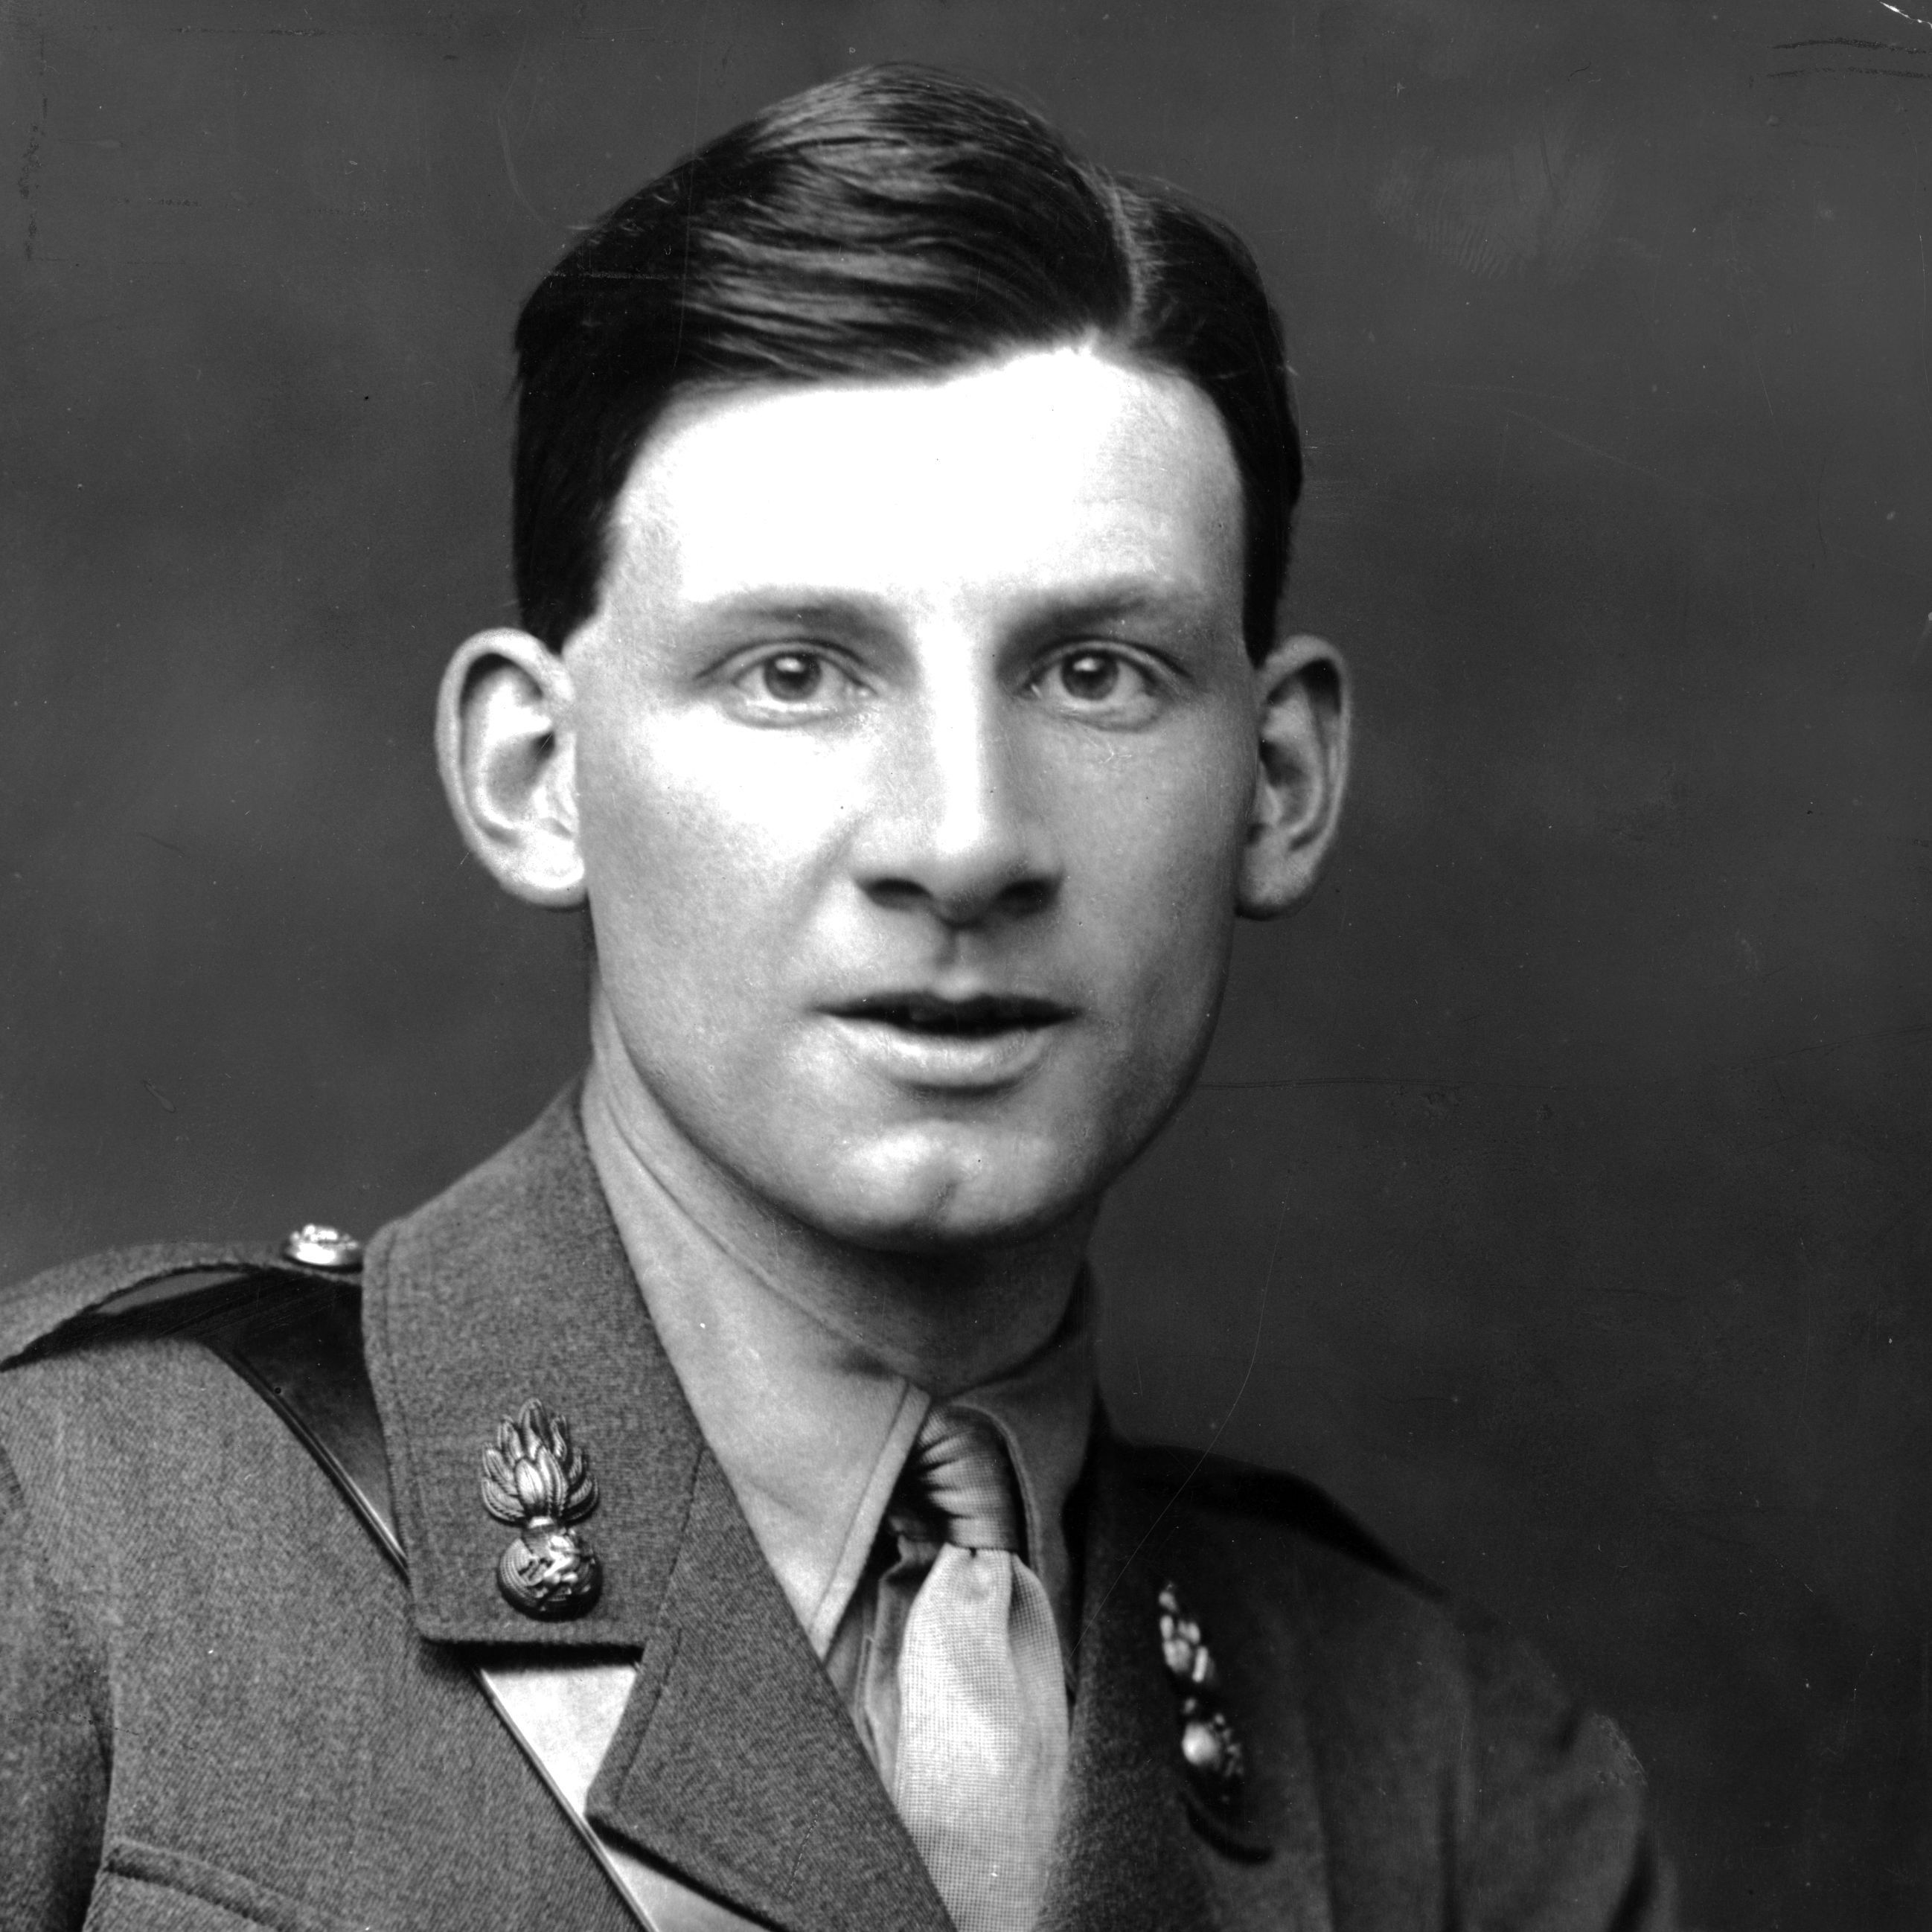 WWI Diaries Of Poet Siegfried Sassoon Go Public For First Time